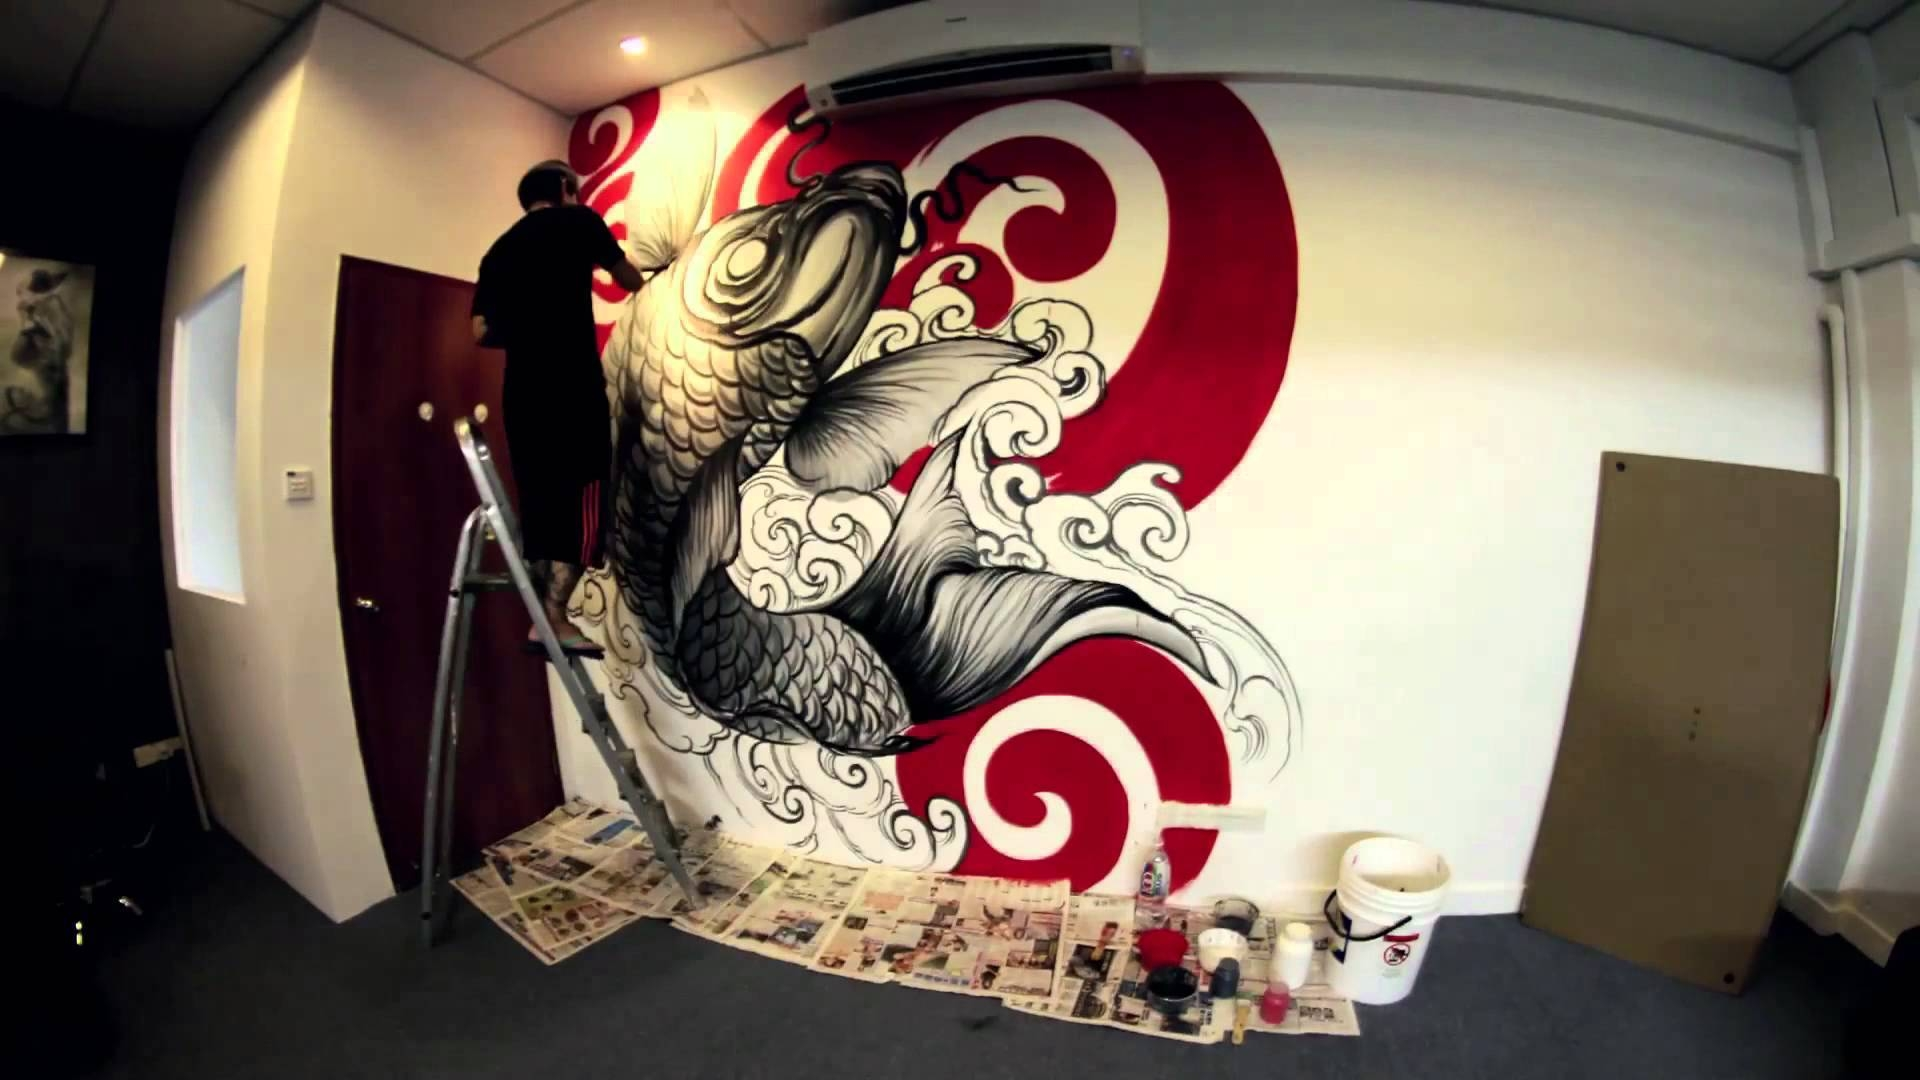 Tattoo Shop Wall Art Pictures To Pin On Pinterest – Tattooskid Throughout 2018 Airbrush Wall Art (View 17 of 20)